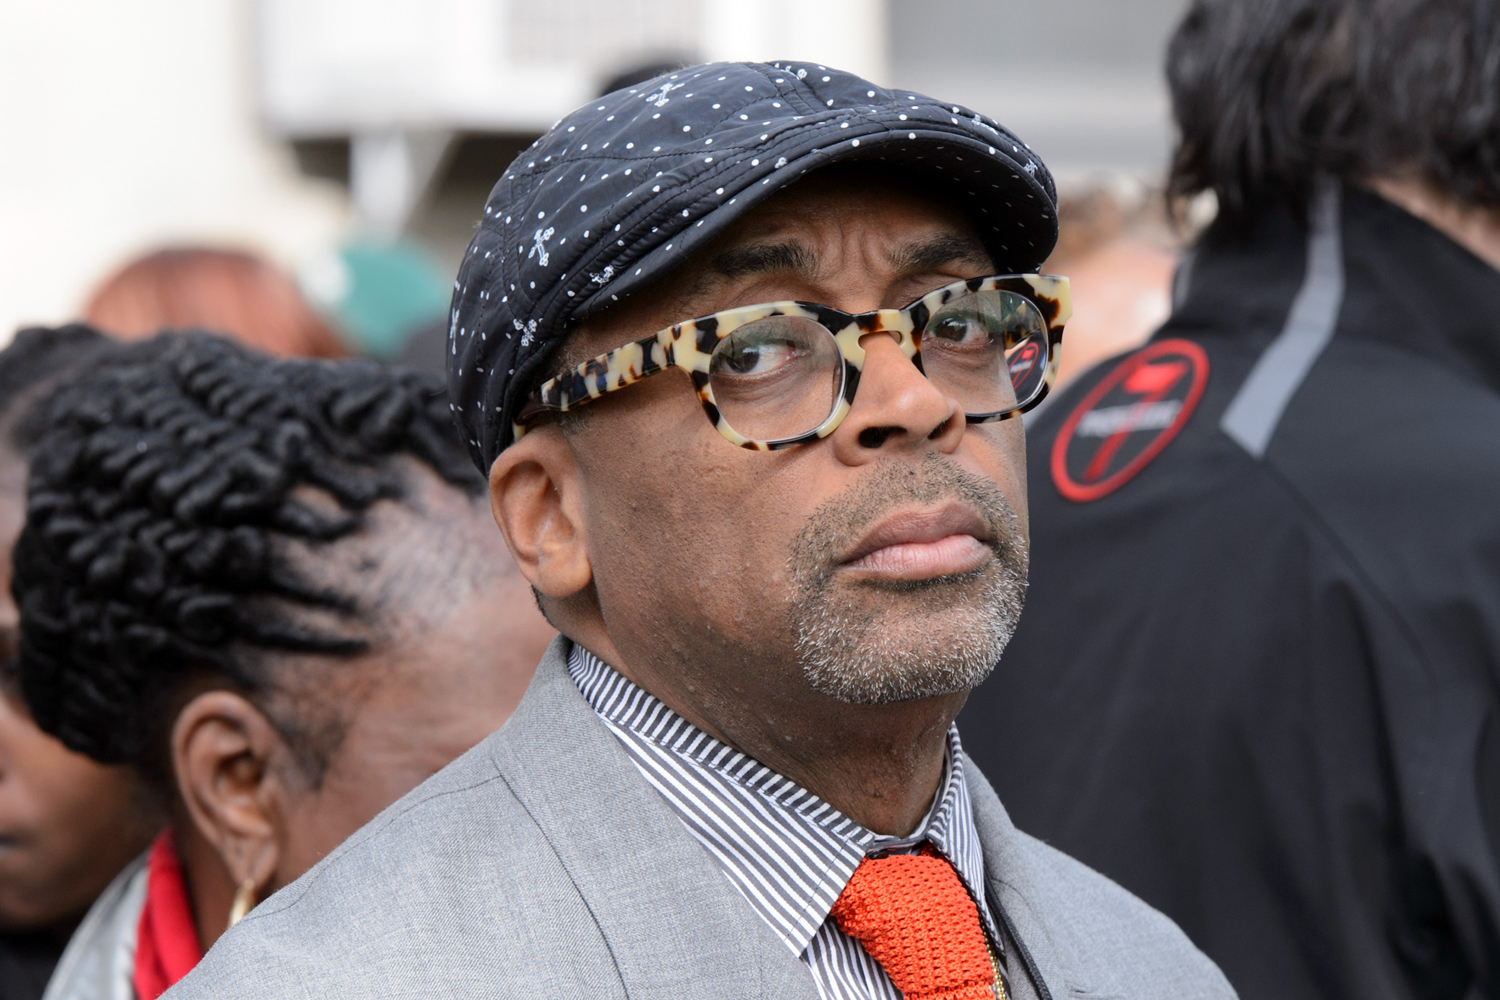 Spike Lee attends a press conference to discuss the upcoming film 'Chiraq' at St. Sabina Church on May 14, 2015 in Chicago, Illinois.